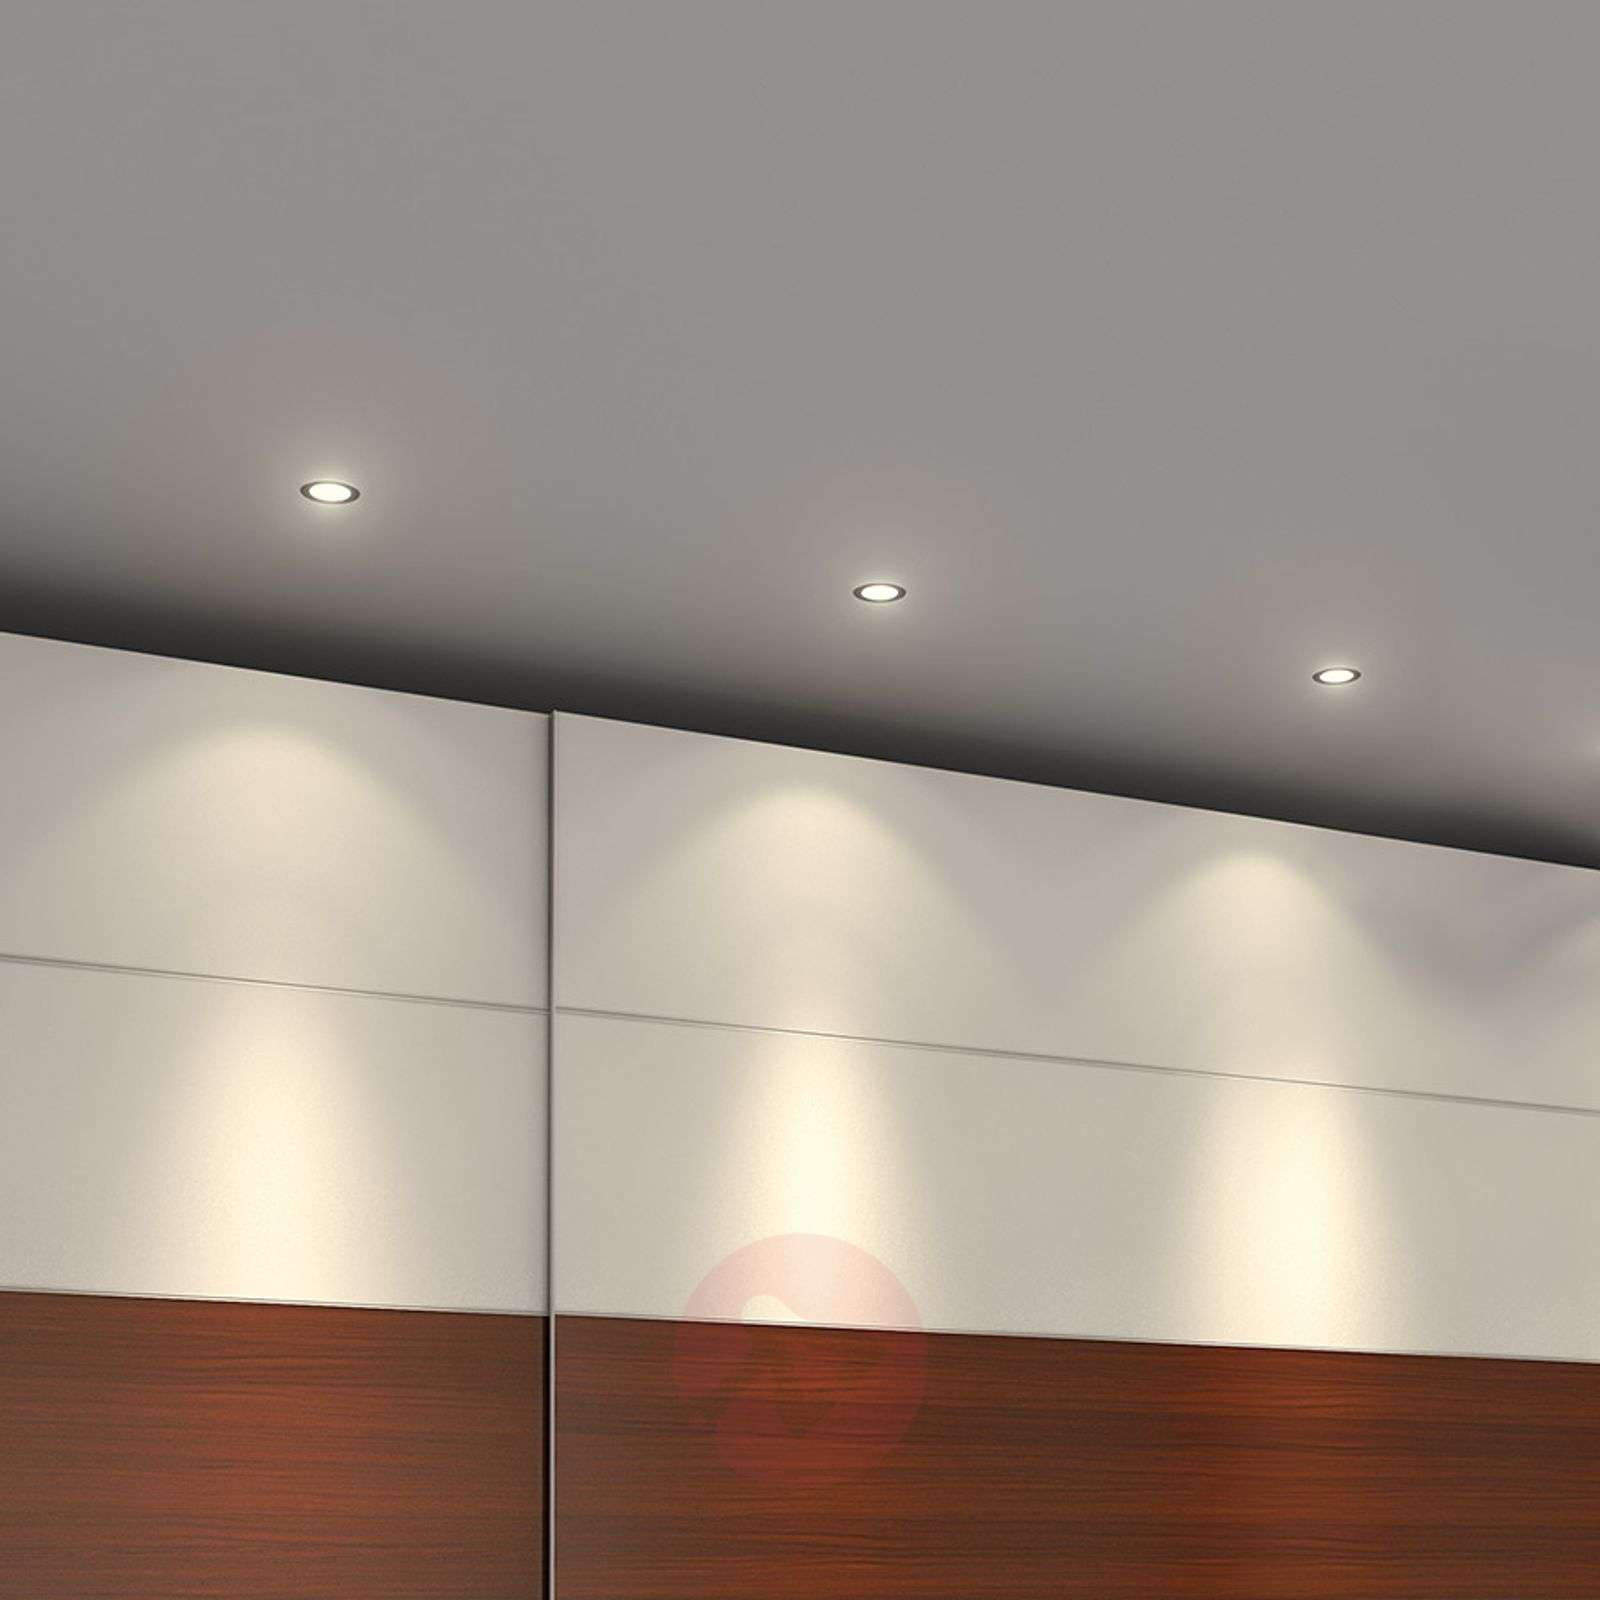 separation shoes e050d e7827 Three recessed lights R 68 LED, warm white